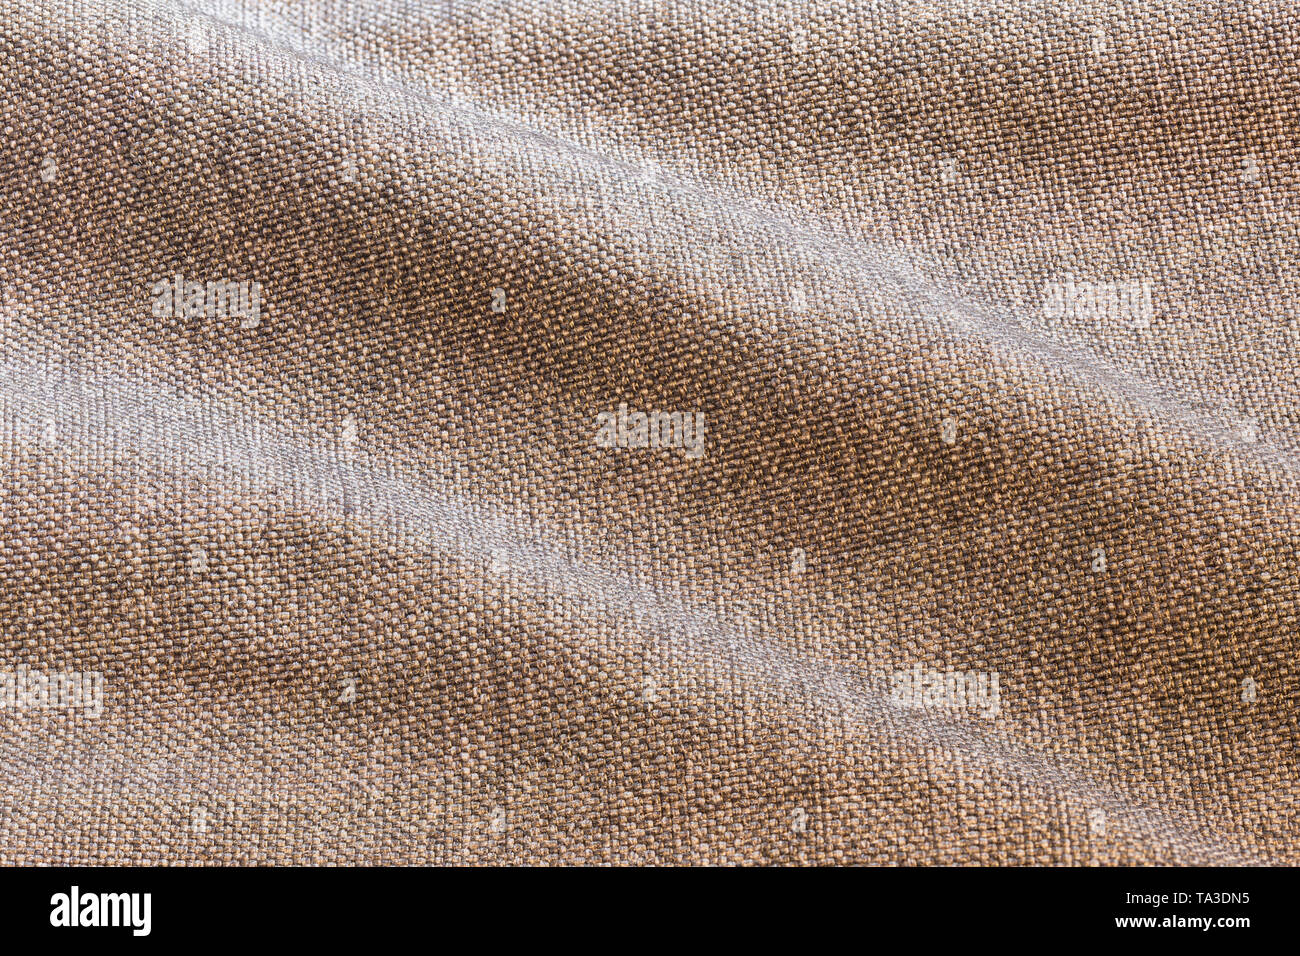 Brown waves dense rough fabric background, close up without any blurring - Stock Image